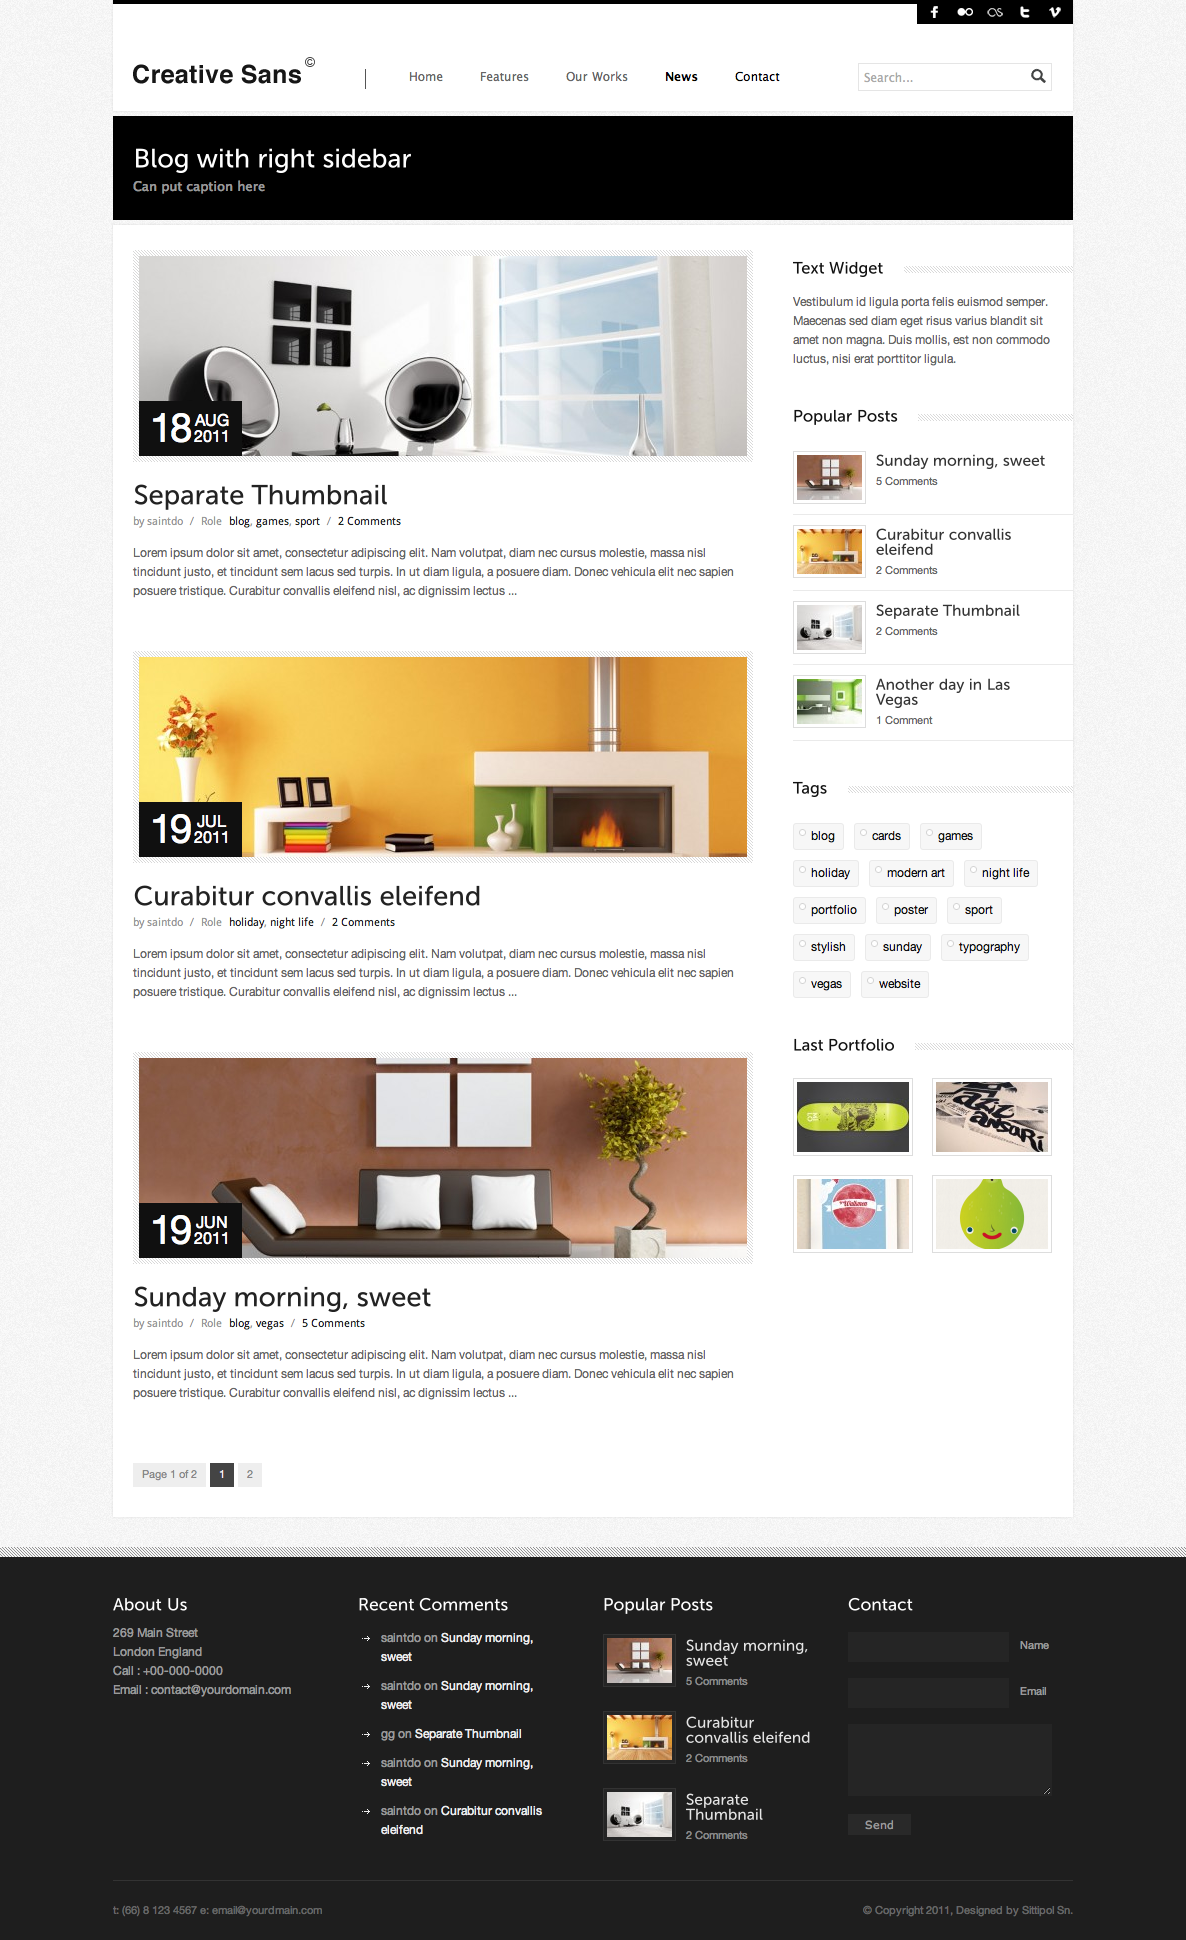 CreativeSans - Agency WP Theme - blog